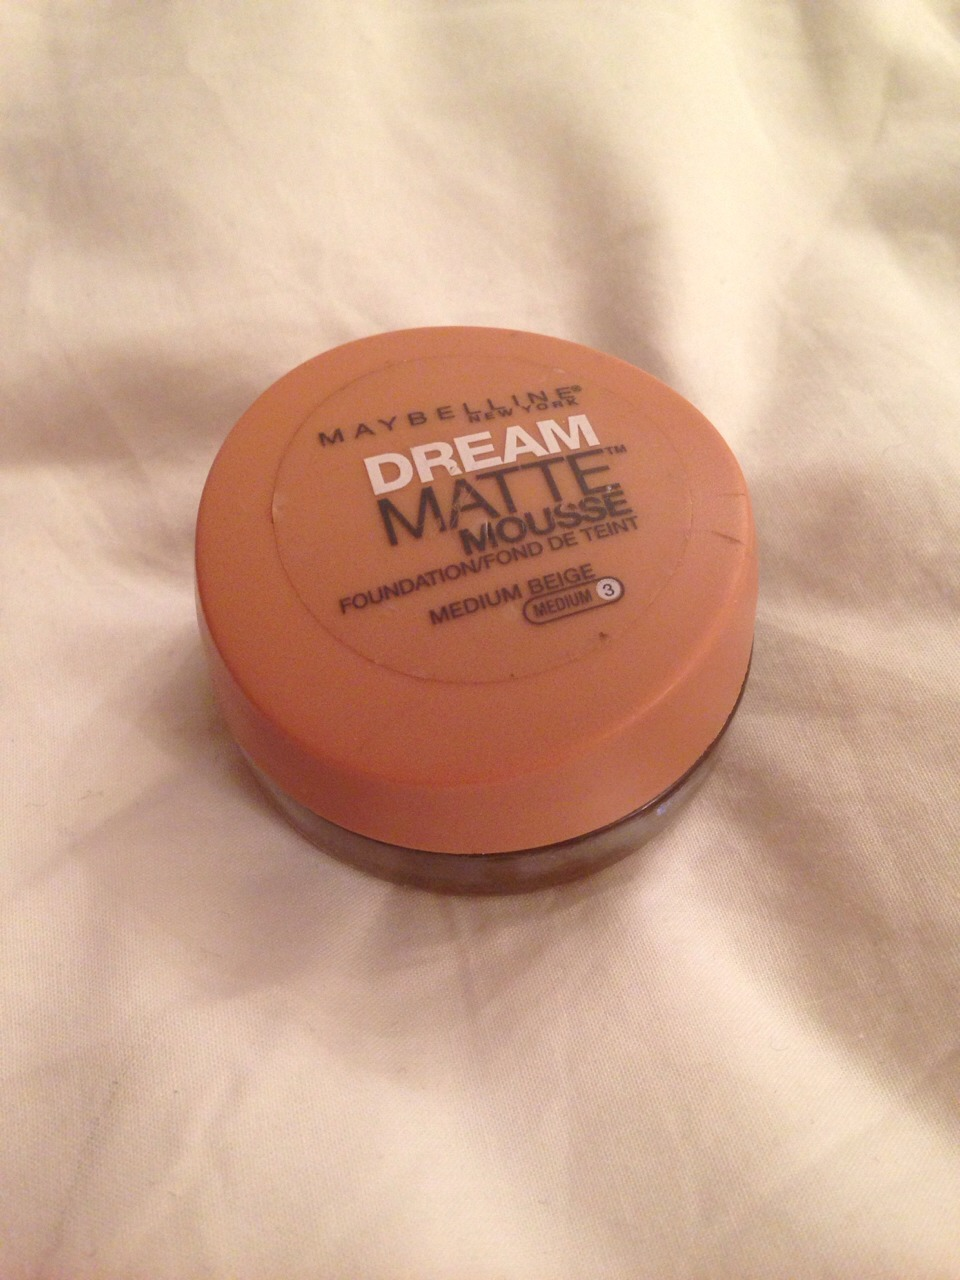 1⃣ - FOUNDATION Whether it's a powder or cream it'll do a basic coverage to put your makeup on. :) (Mine is maybelline dream matte mousse)